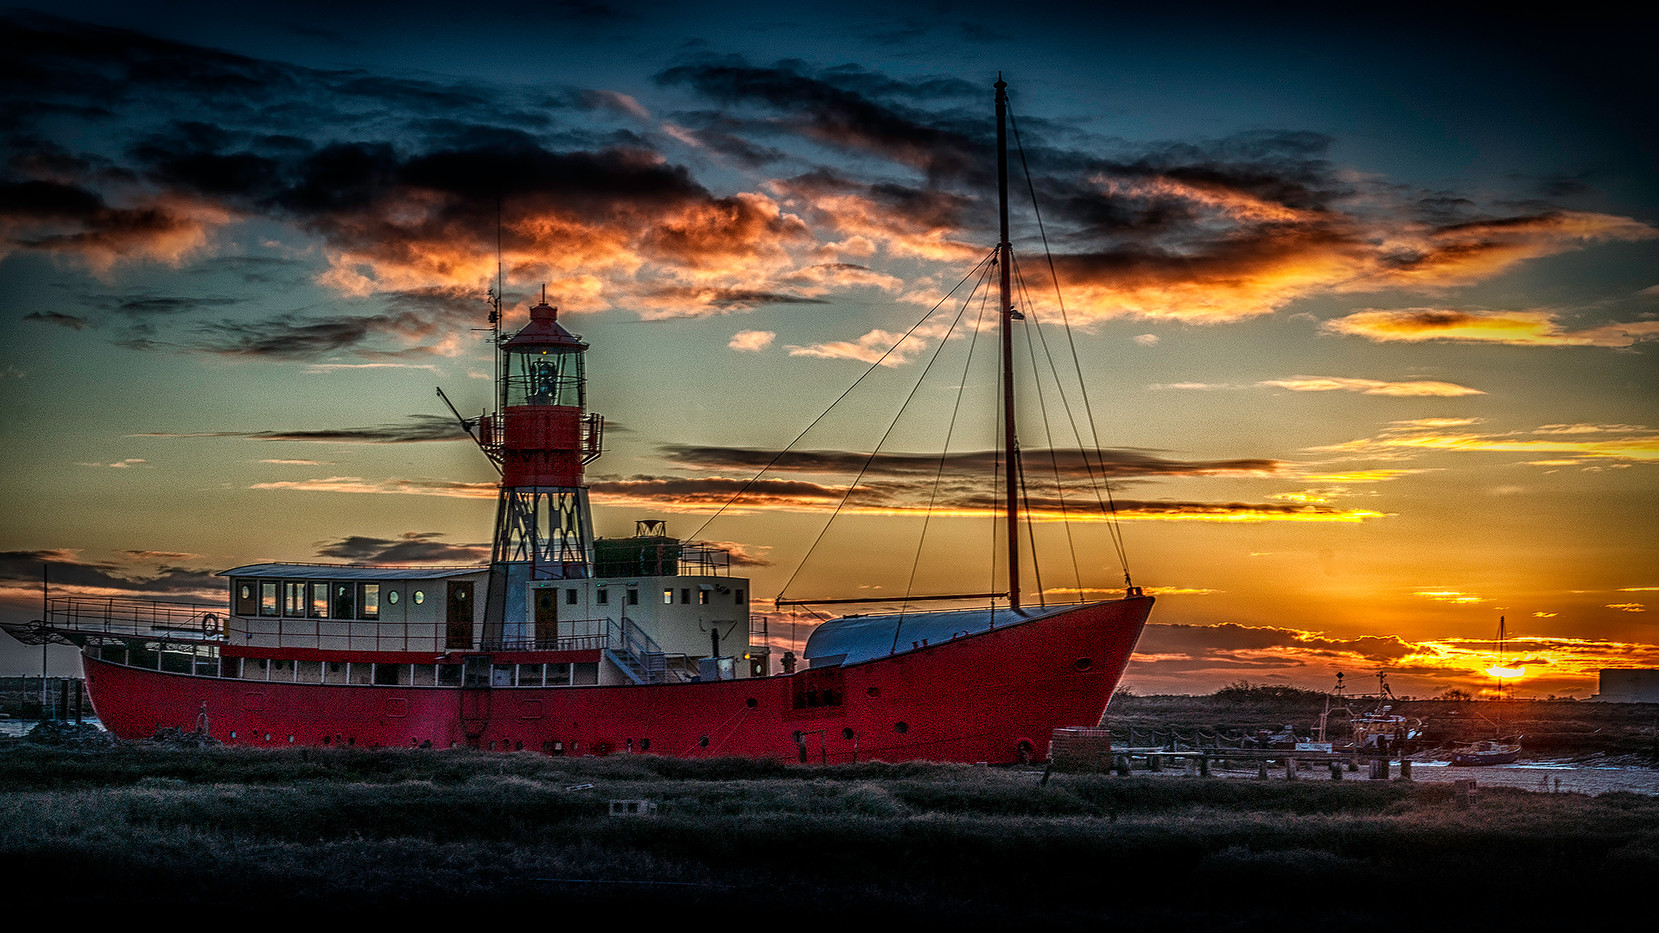 16 TOLLESBURY LIGHT by Steve Oakes